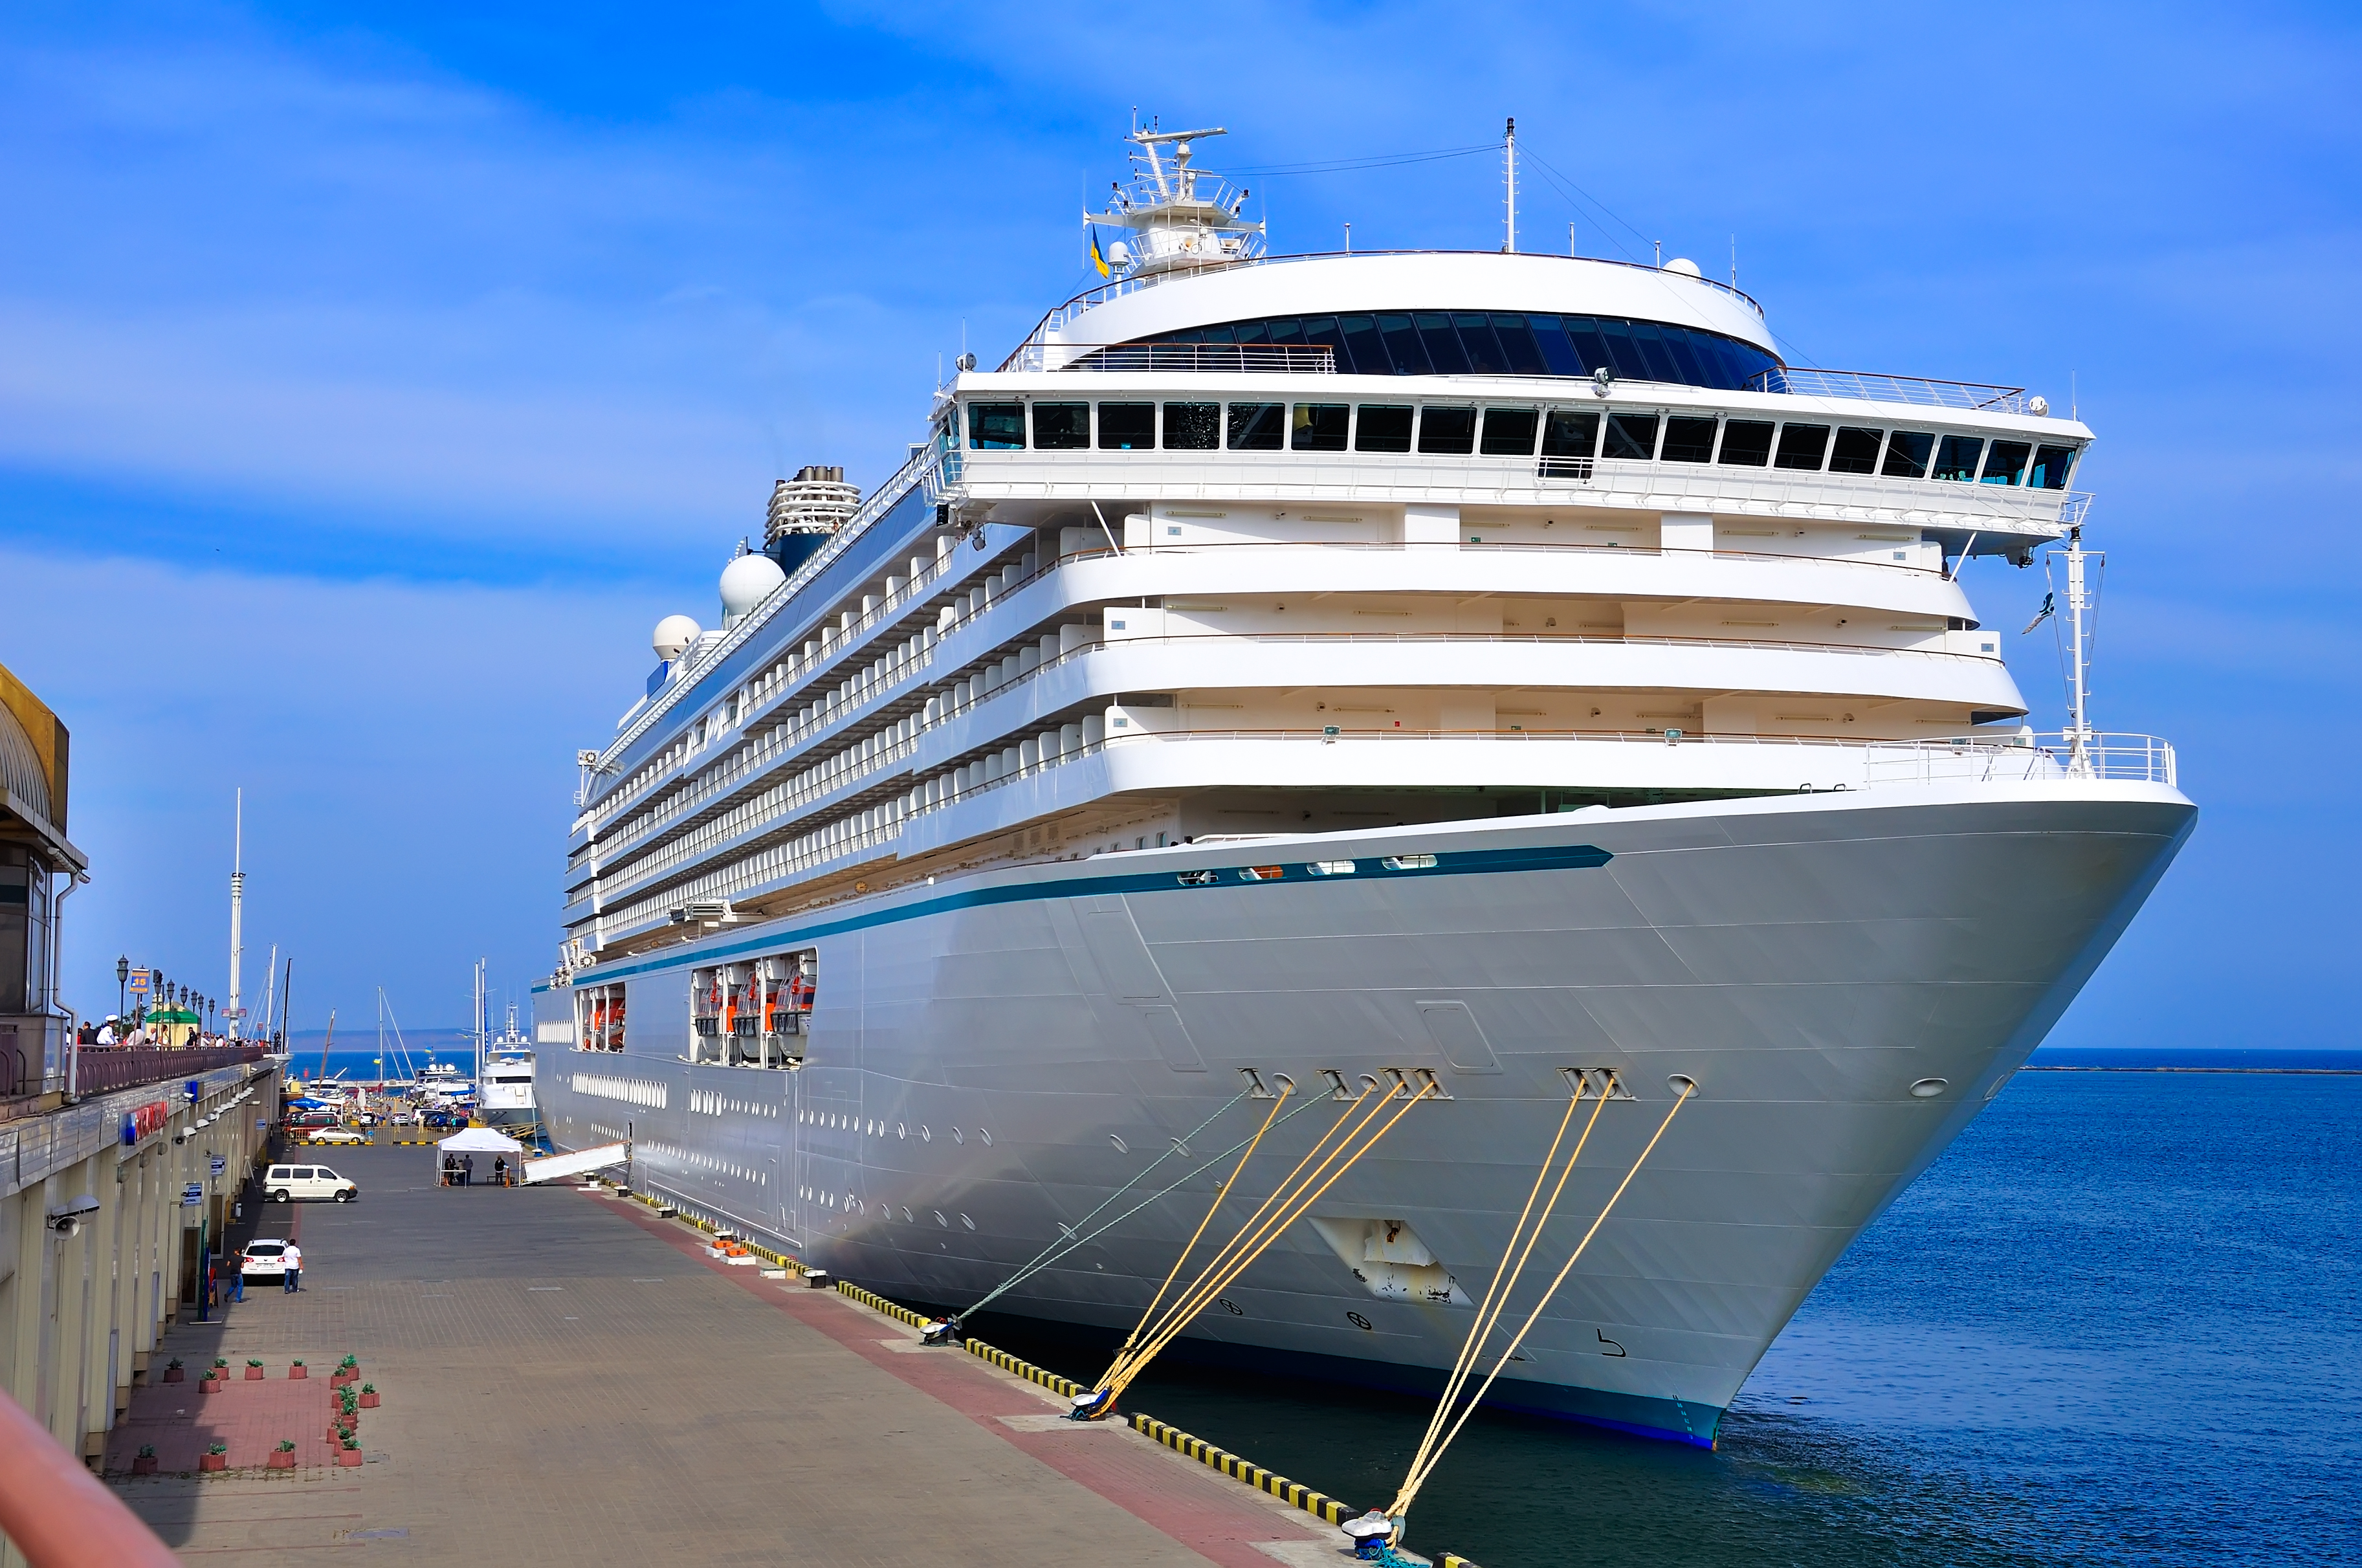 Free Cruise Phone Scam Continued Unabated - Can you text from a cruise ship